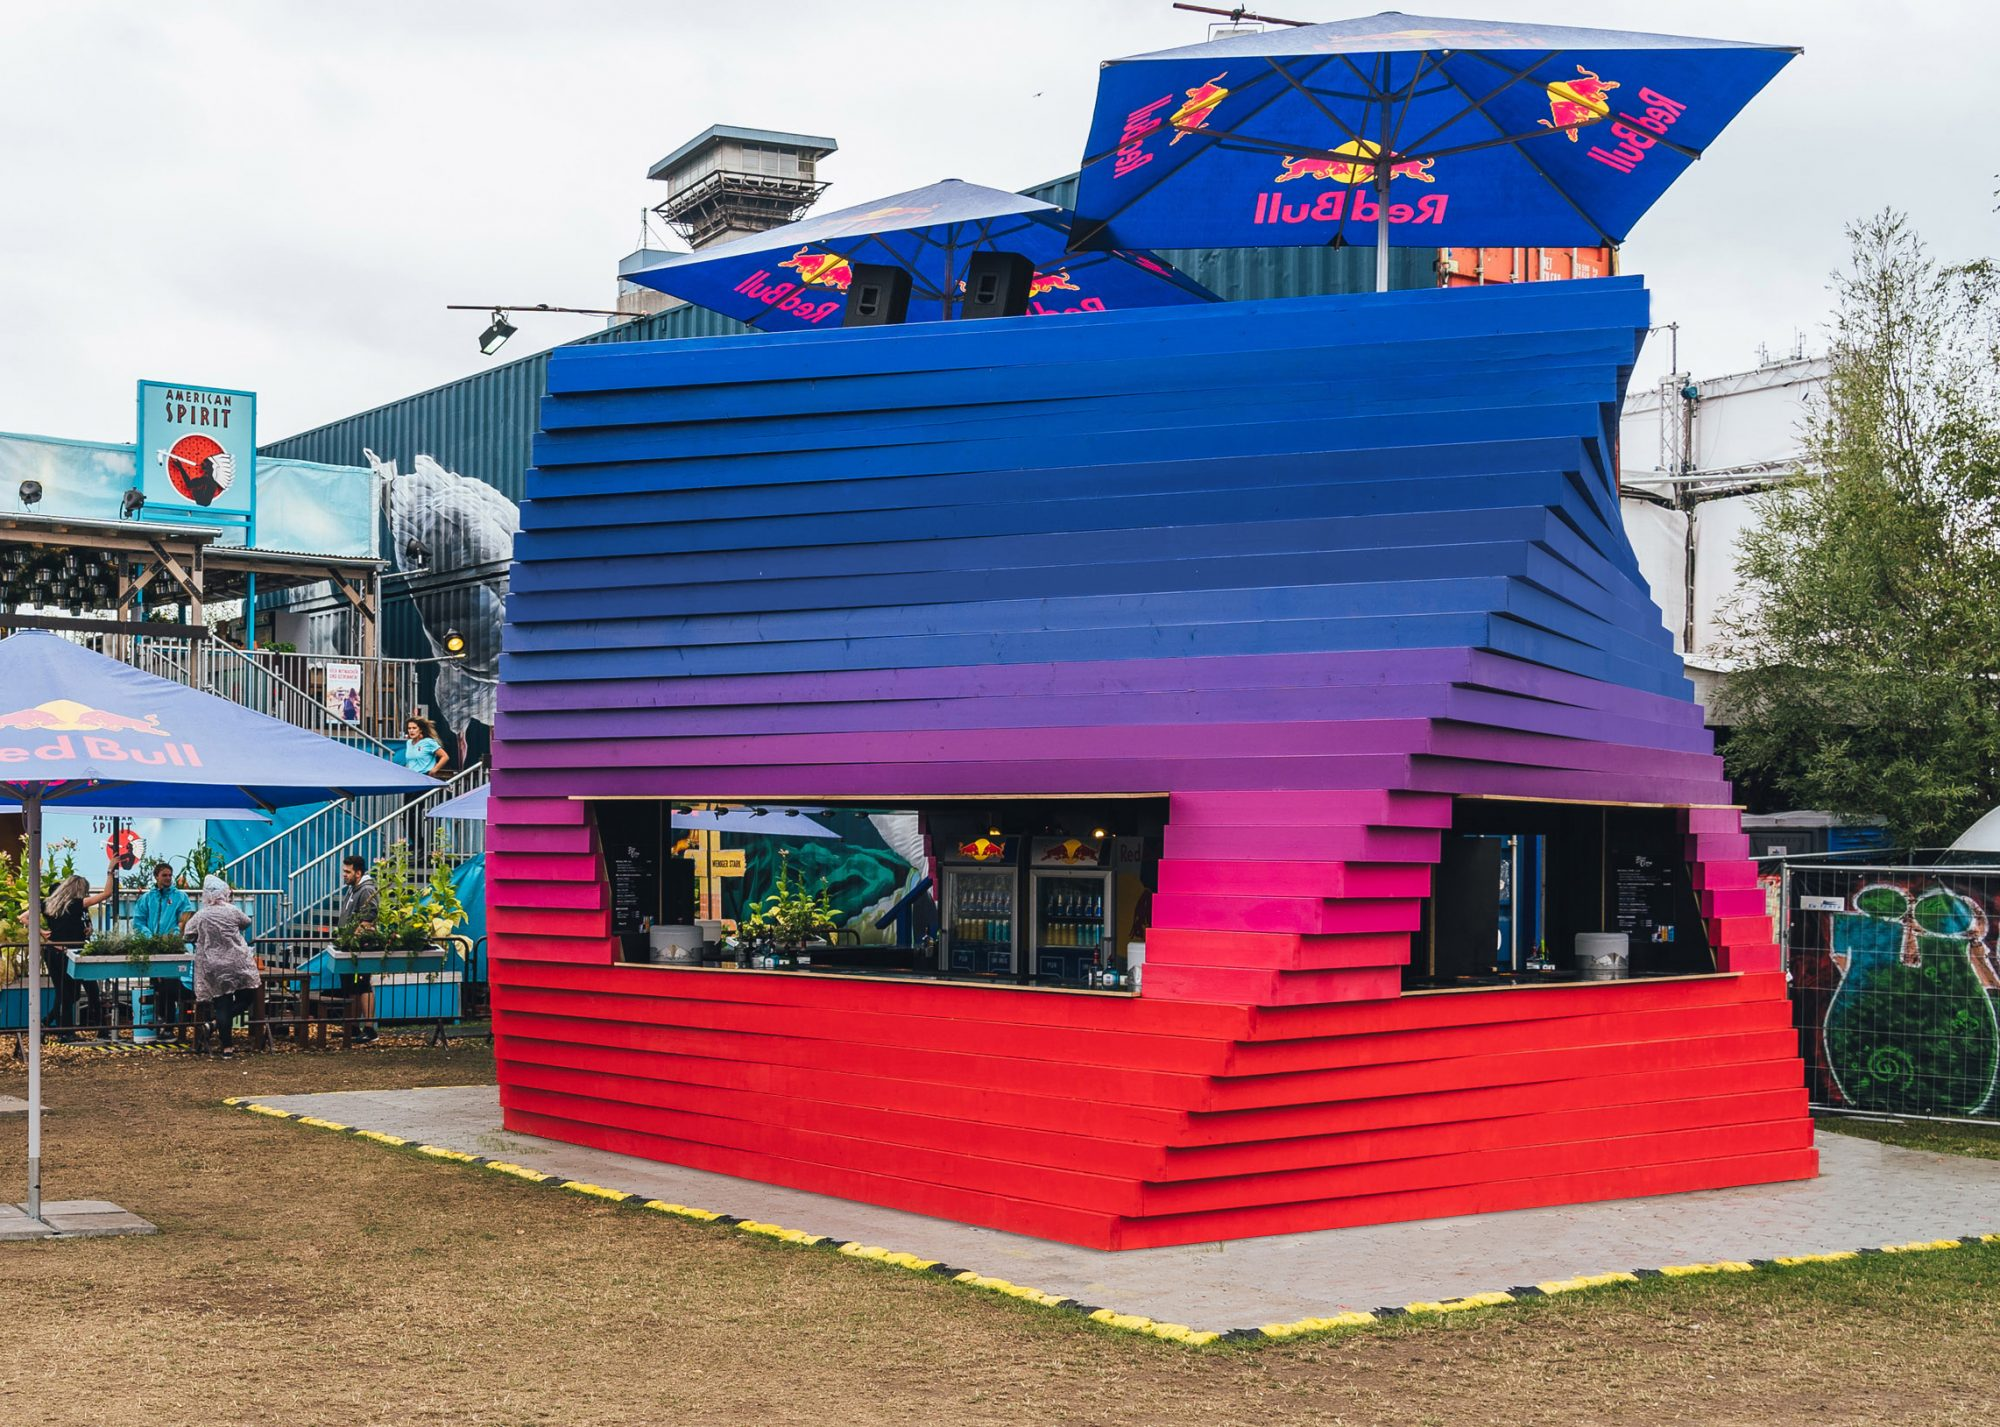 Designobjekt MS Dockville Kooperation Red Bull